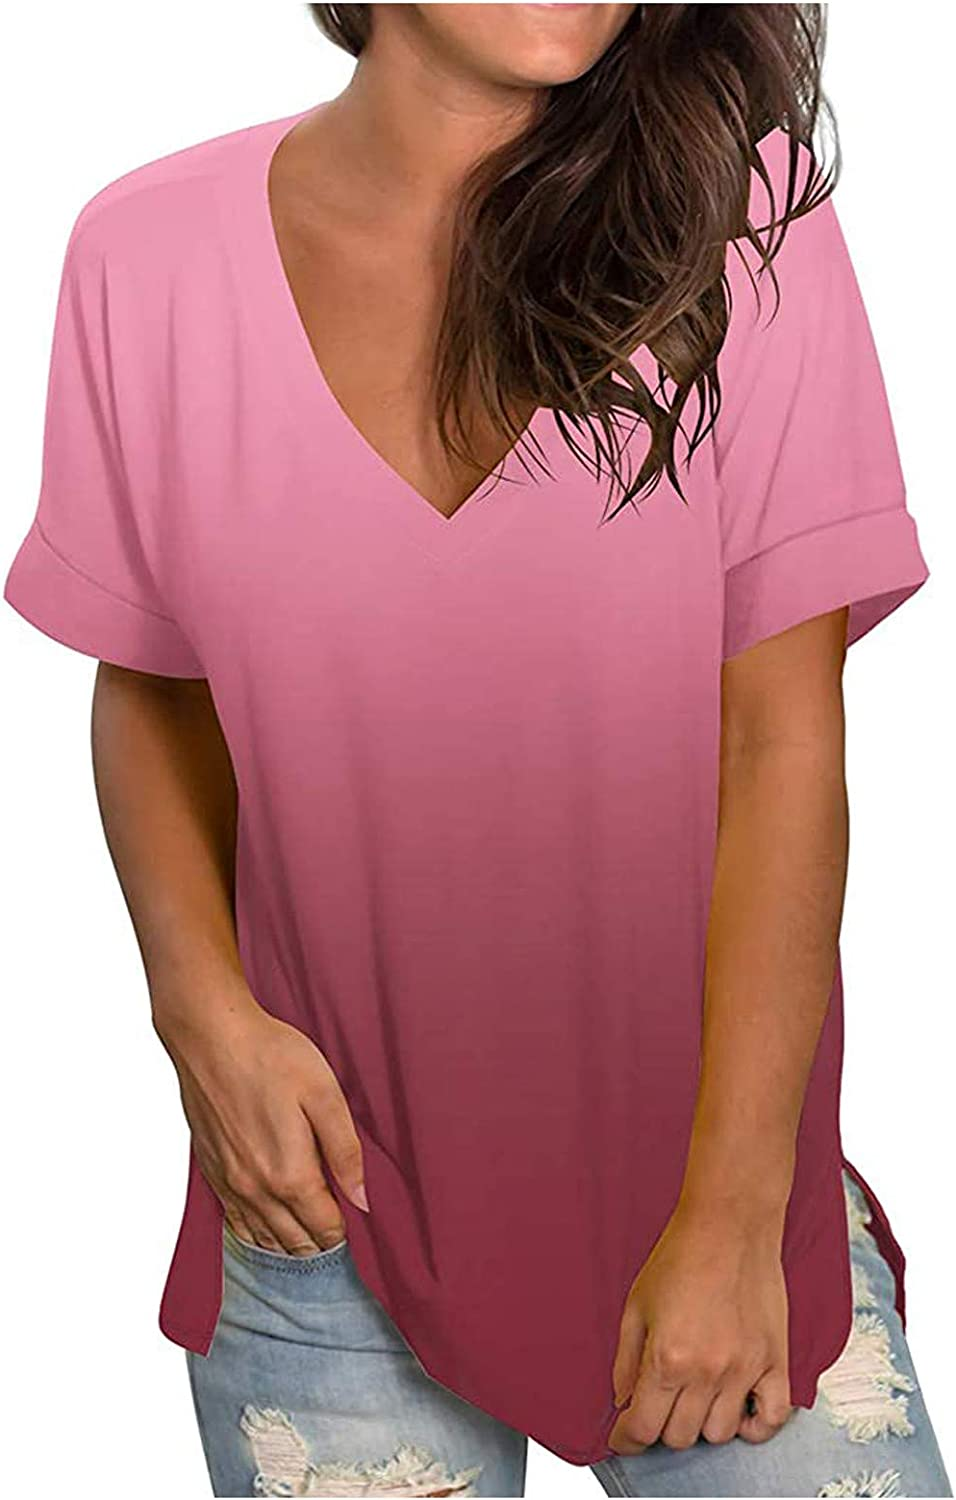 Womens Tops Summer Tops for Women Plus Size, Short Sleeve V Neck T-Shirt Casual Loose Fit Shirts Blouses Tops